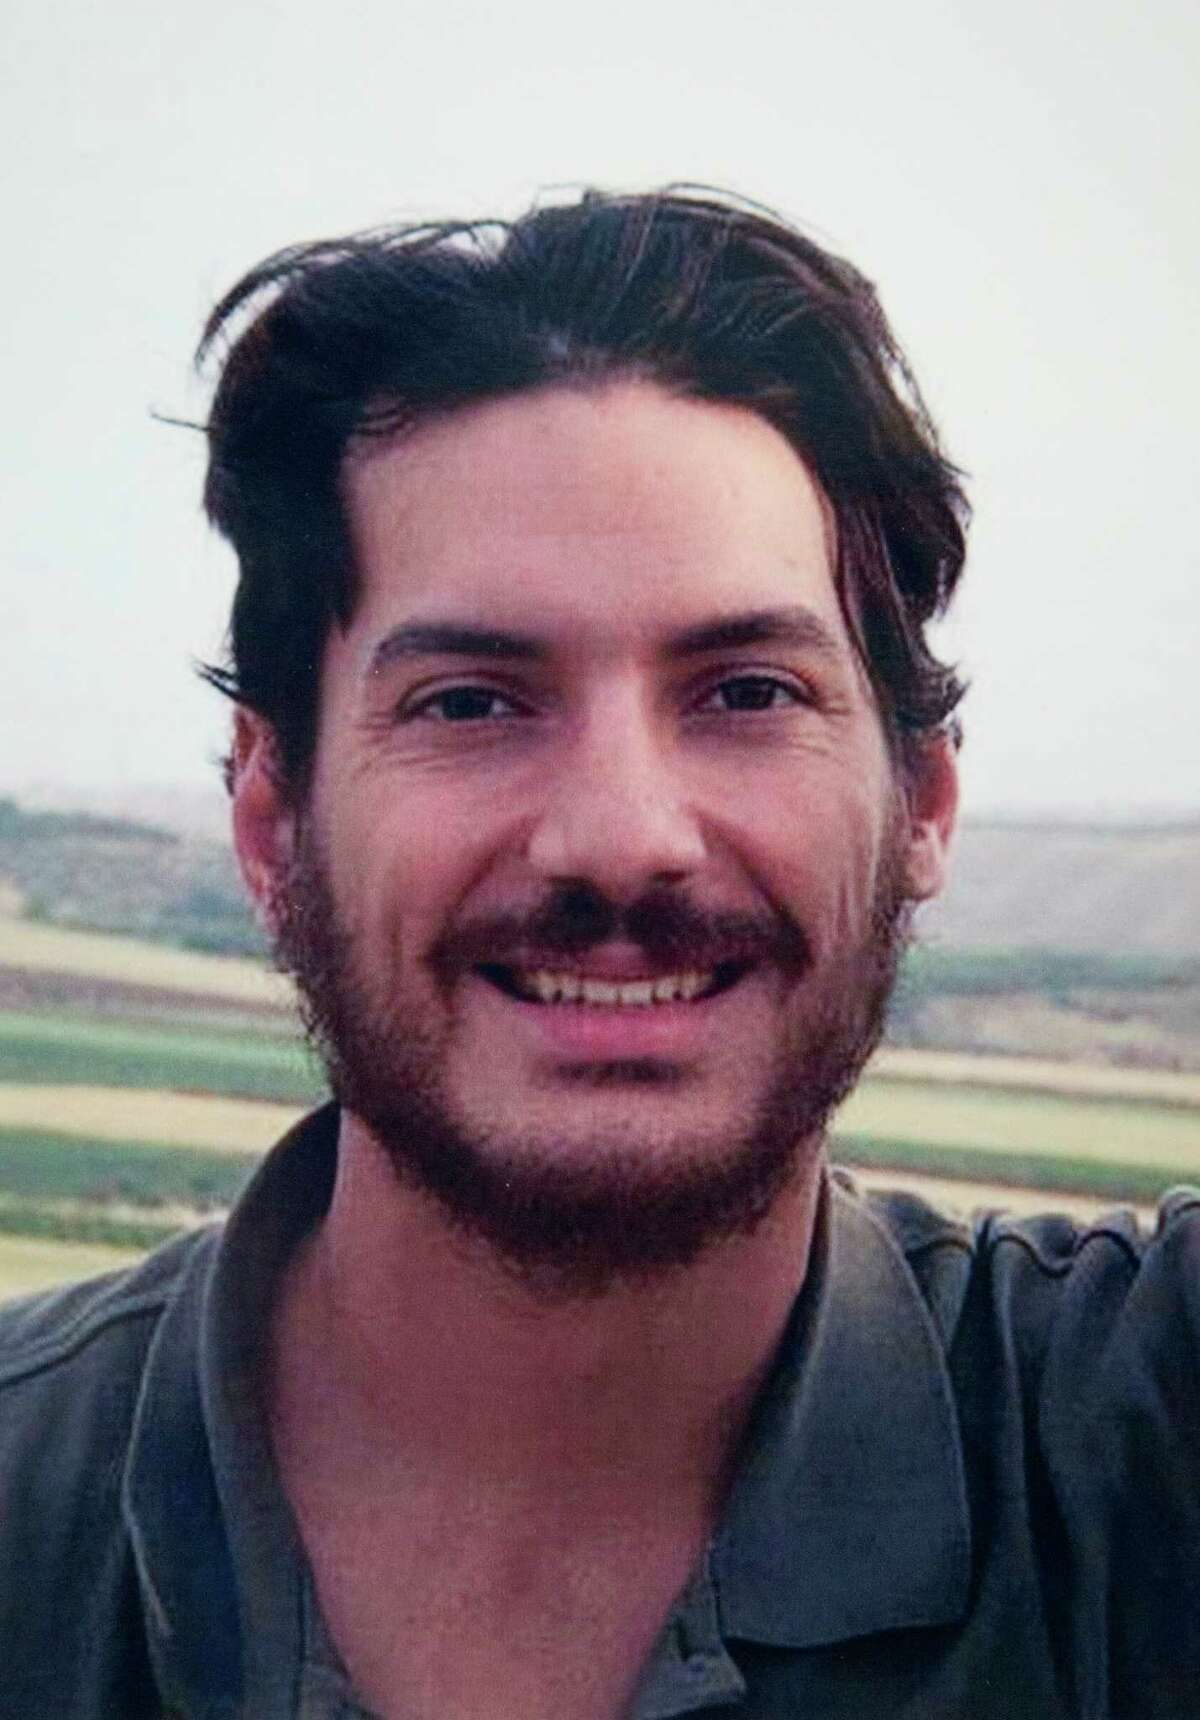 Photograph of Austin Bennett Tice provided by his family. Tice went missing in Syria while working as a freelance journalist. Tice disappearance took place in August 13, 2012. Photo Provided